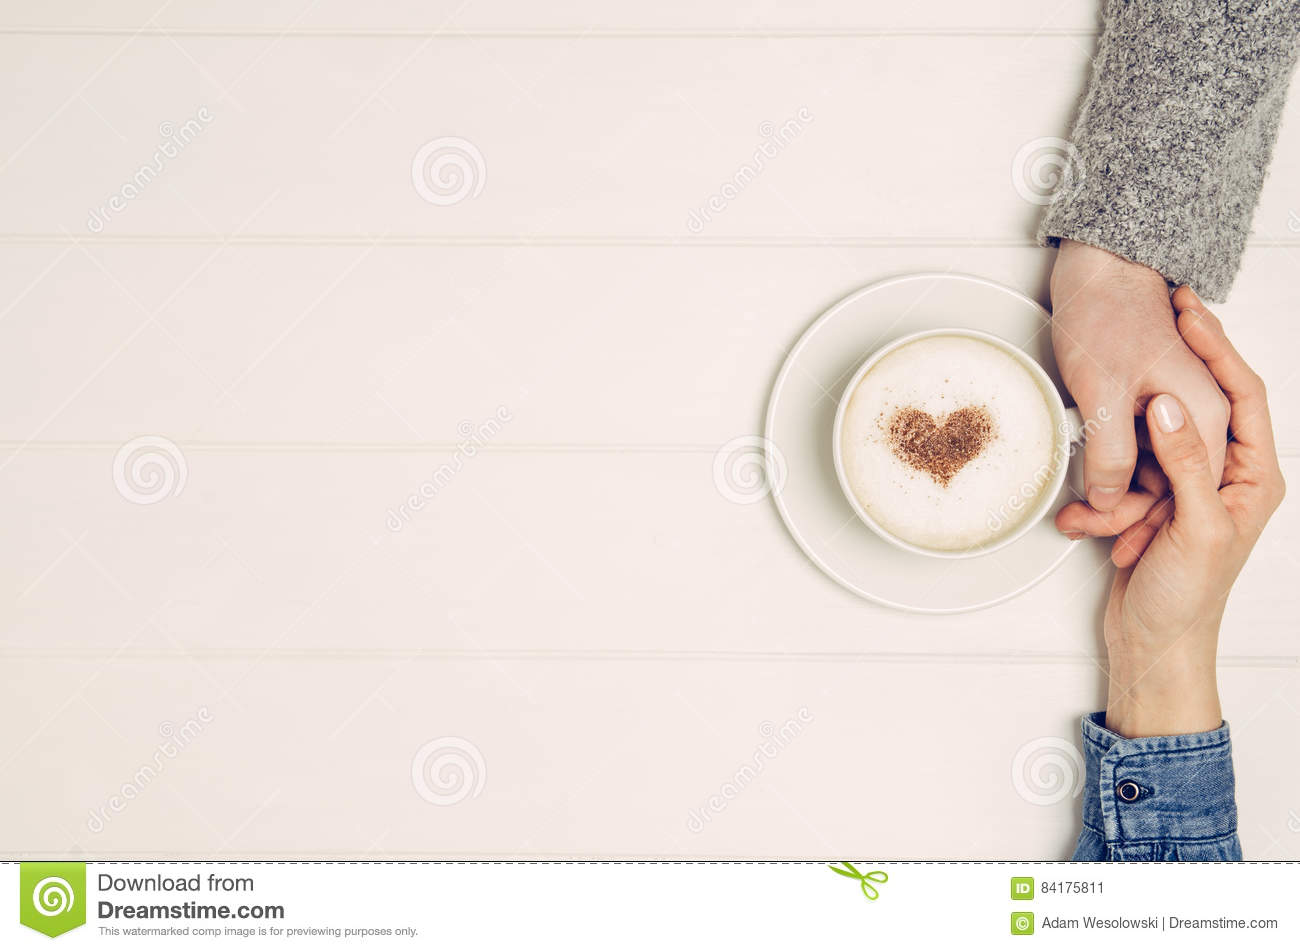 White table top view White Working Couple Holding Hands With Coffee On White Table Top View Dreamstimecom Couple Holding Hands With Coffee On White Table Top View Stock